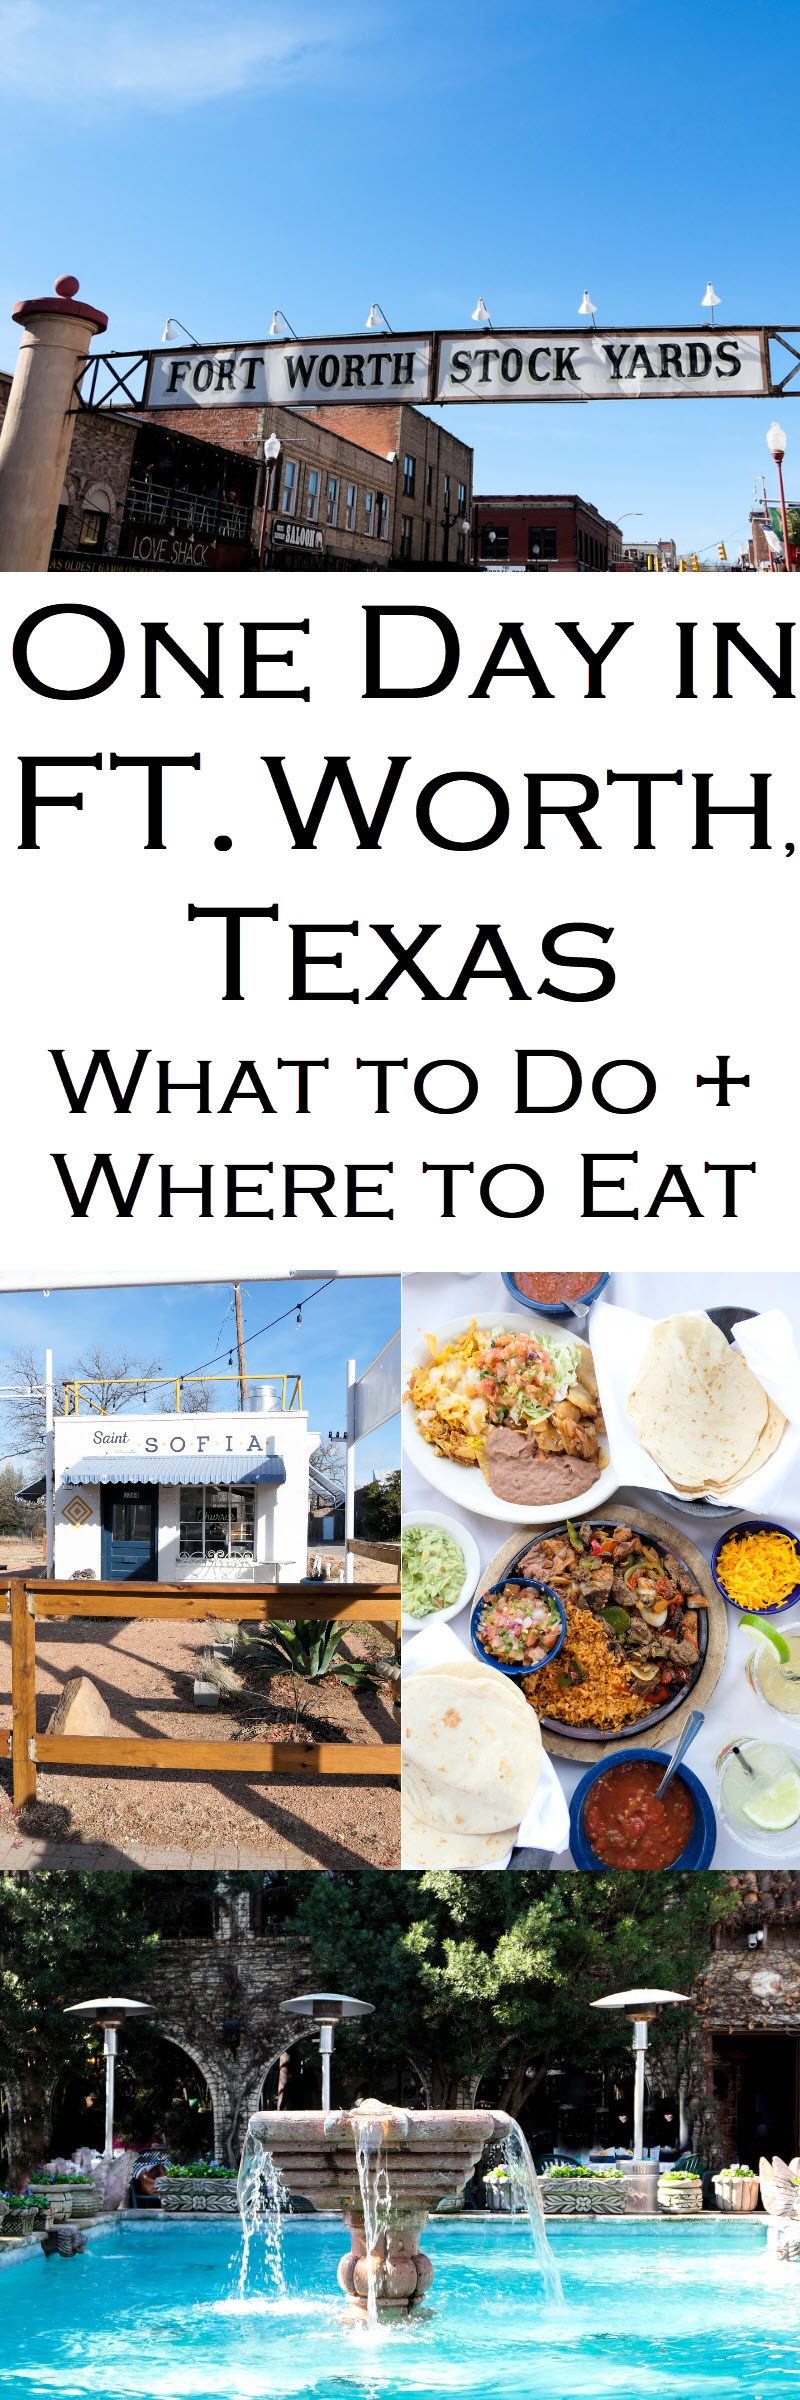 What to Do in Ft. Worth for 1 Day Travel Guide - Where to Eat #texas #ftworth #dallasftworth #travel #travelguide #travelinspiration #travelblog #travelblogger #wanderlust